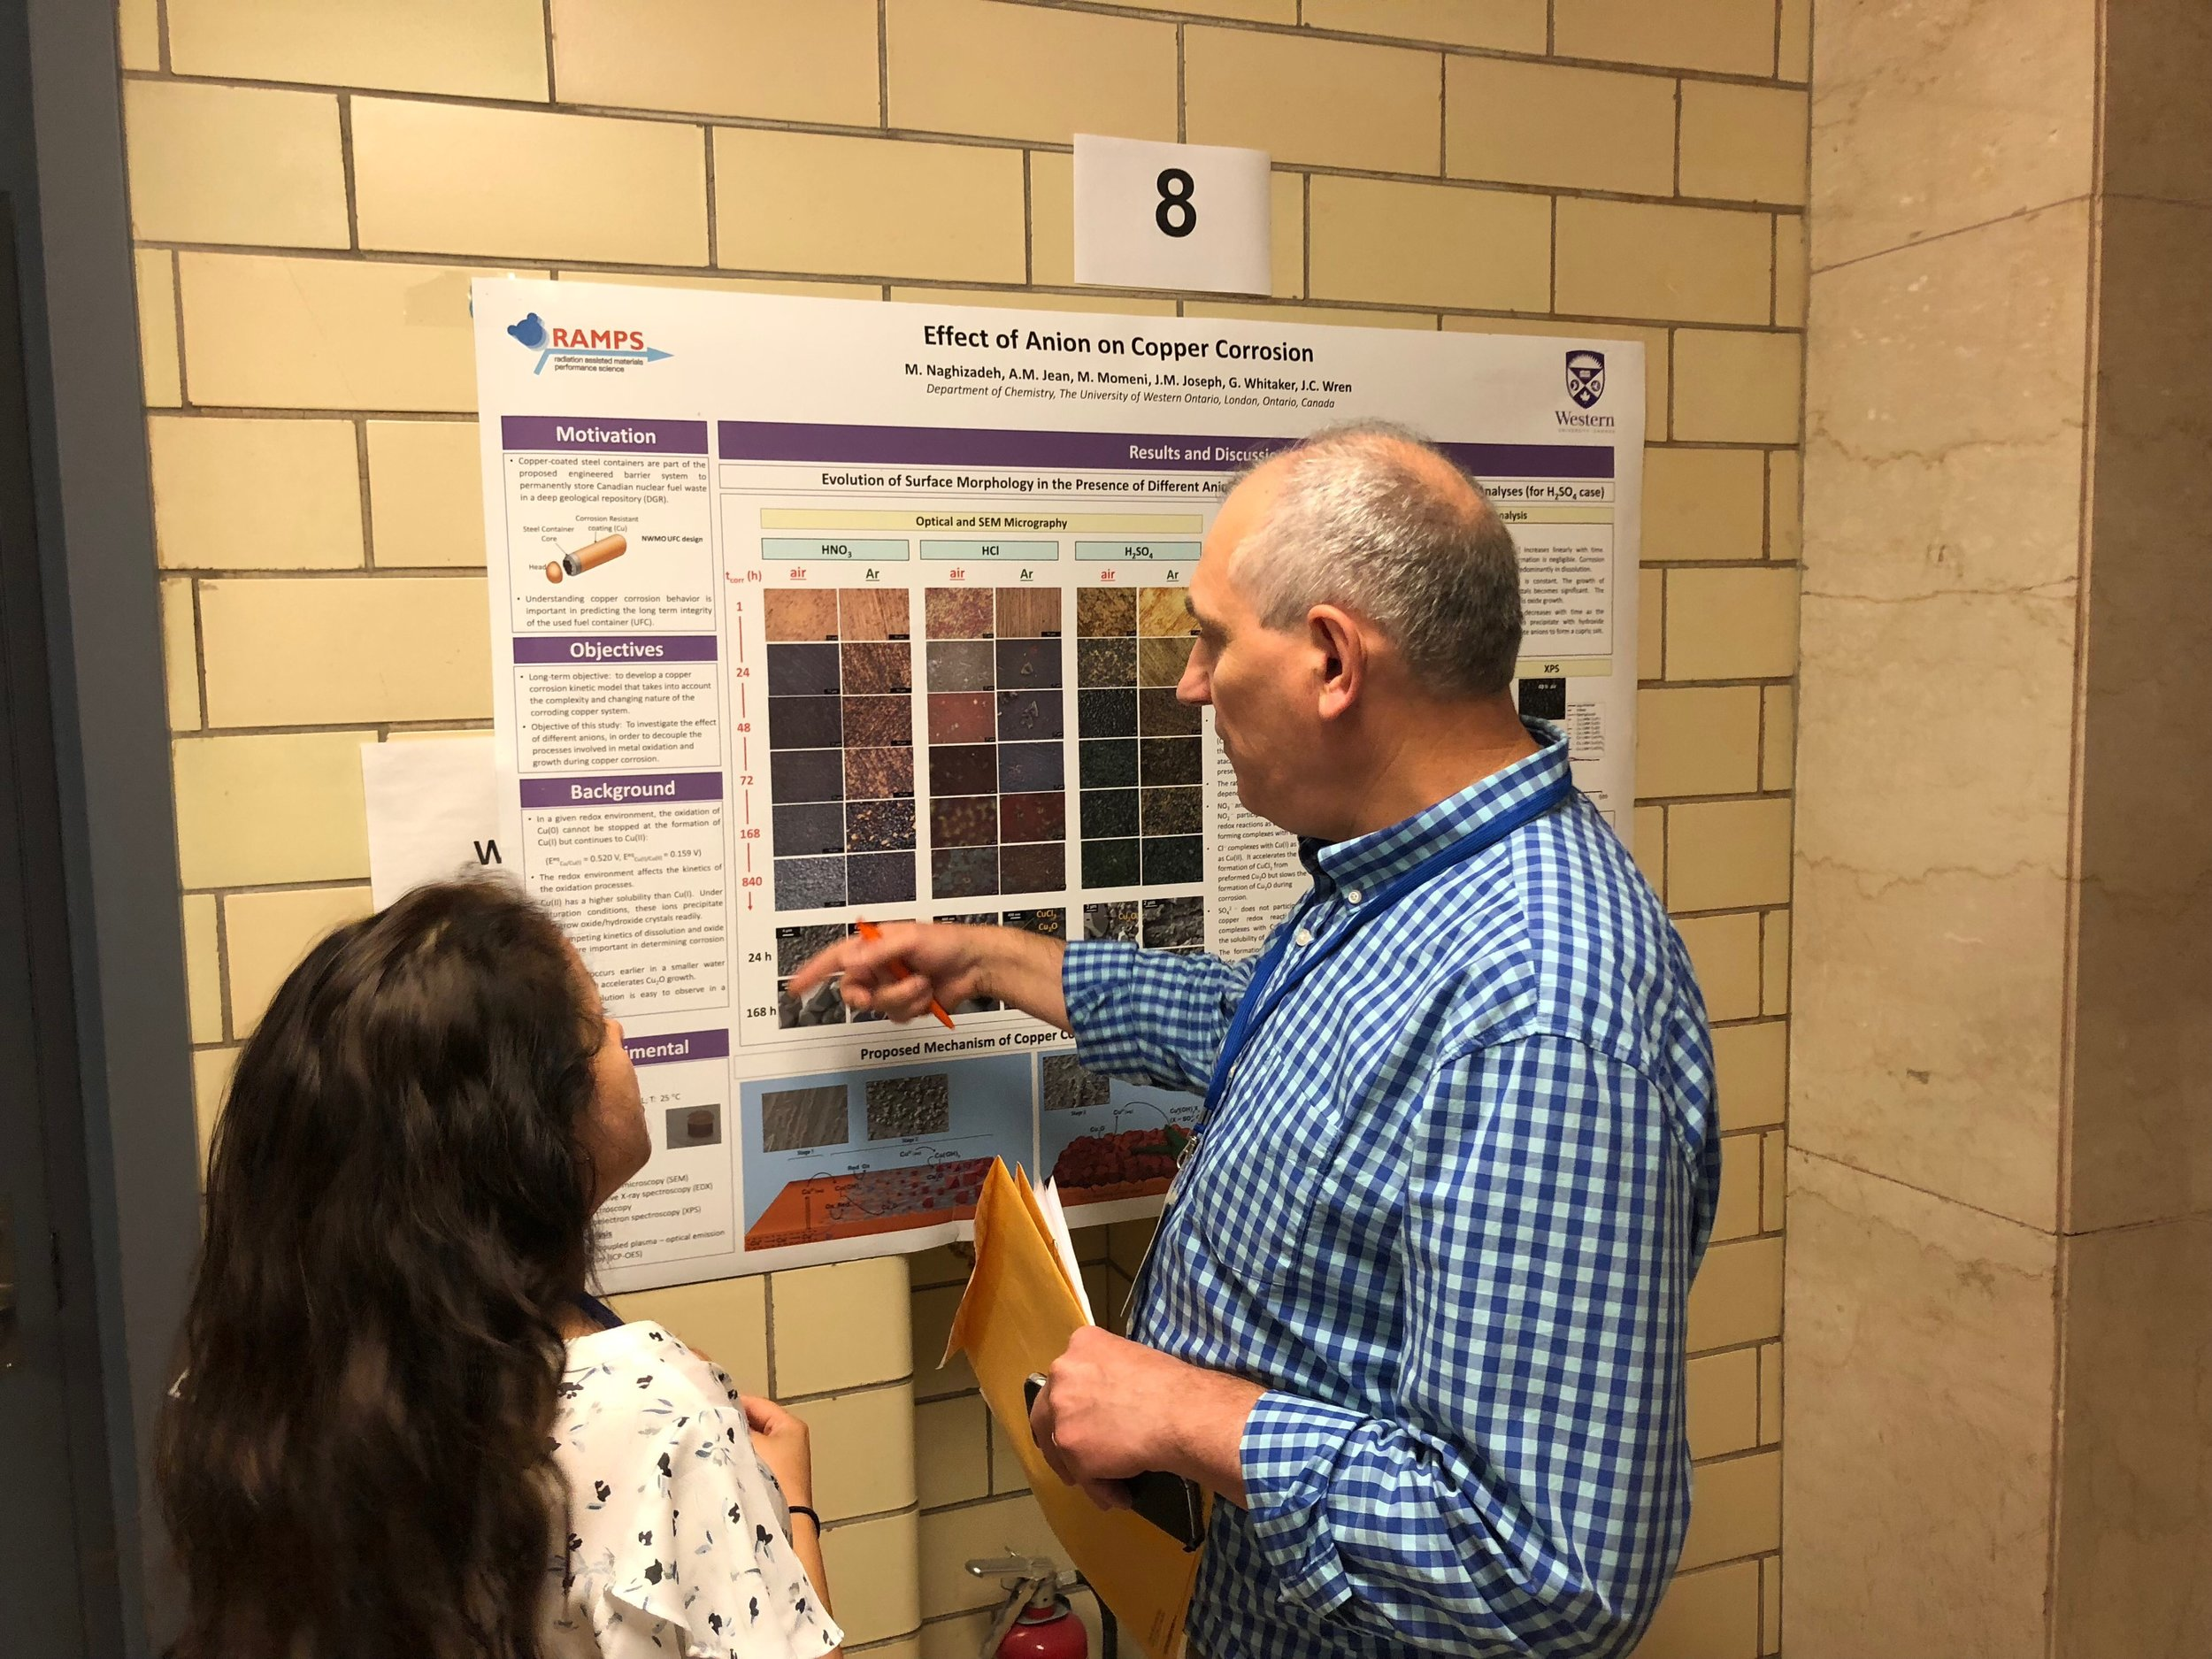 Masoumeh Naghidazeh discussing her poster at the NACE student conference, July 2018